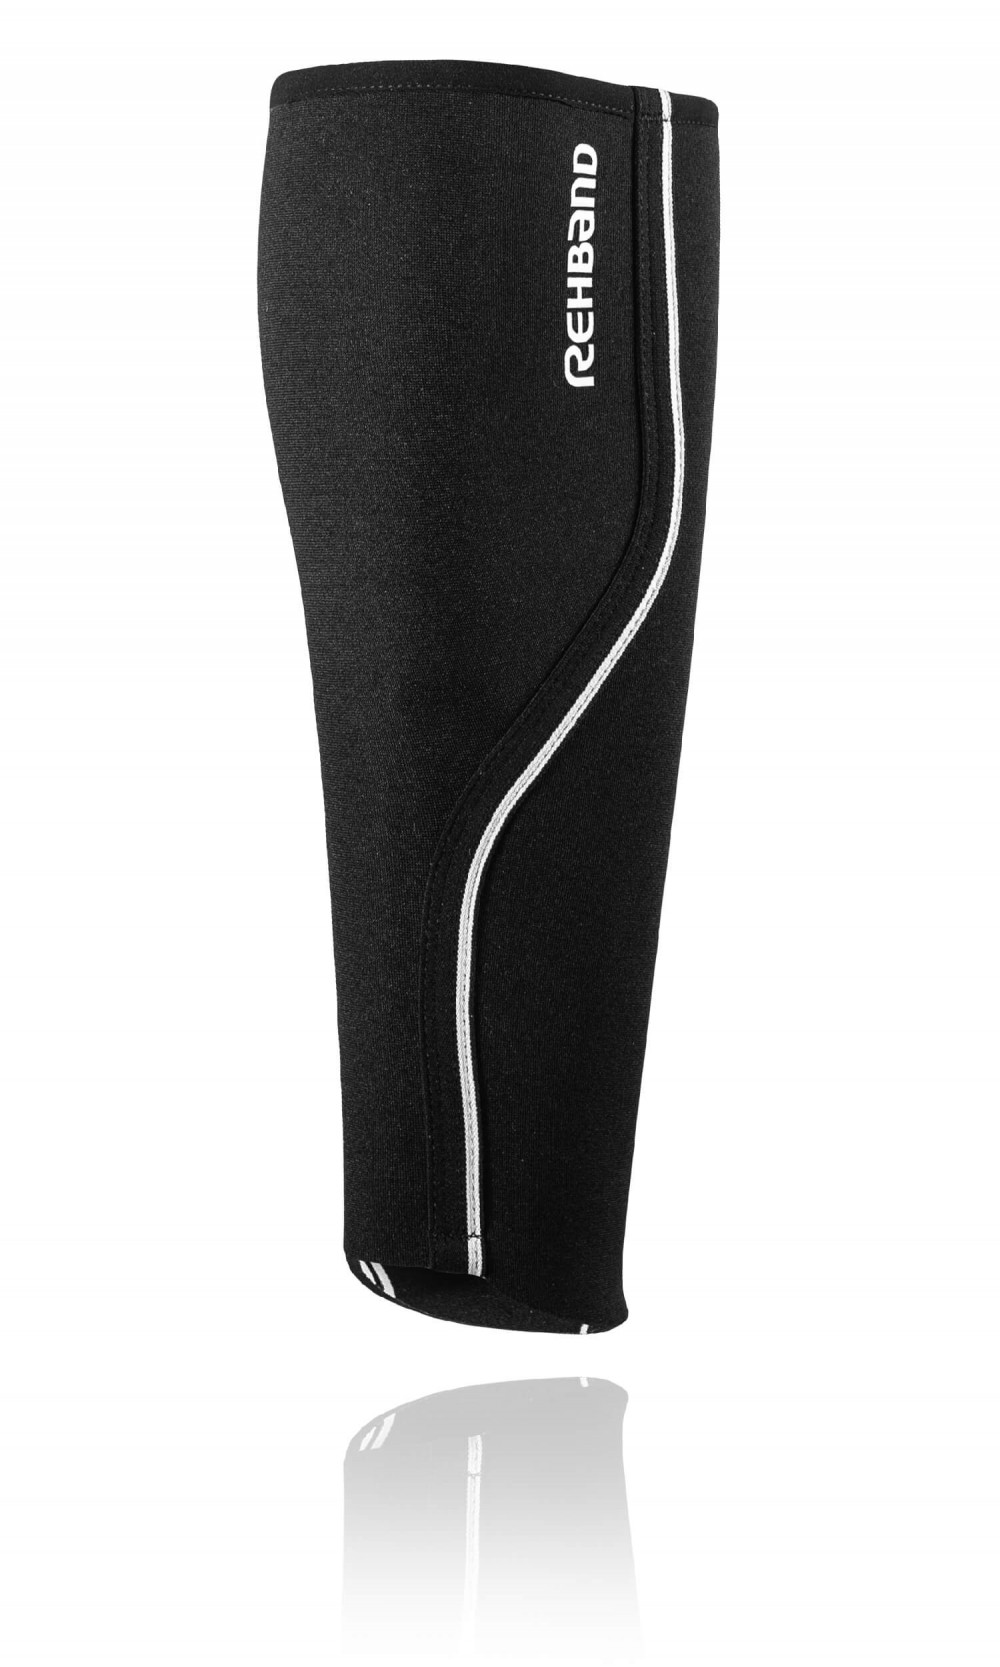 QD Shin & Calf Sleeve 3mm - Black - M